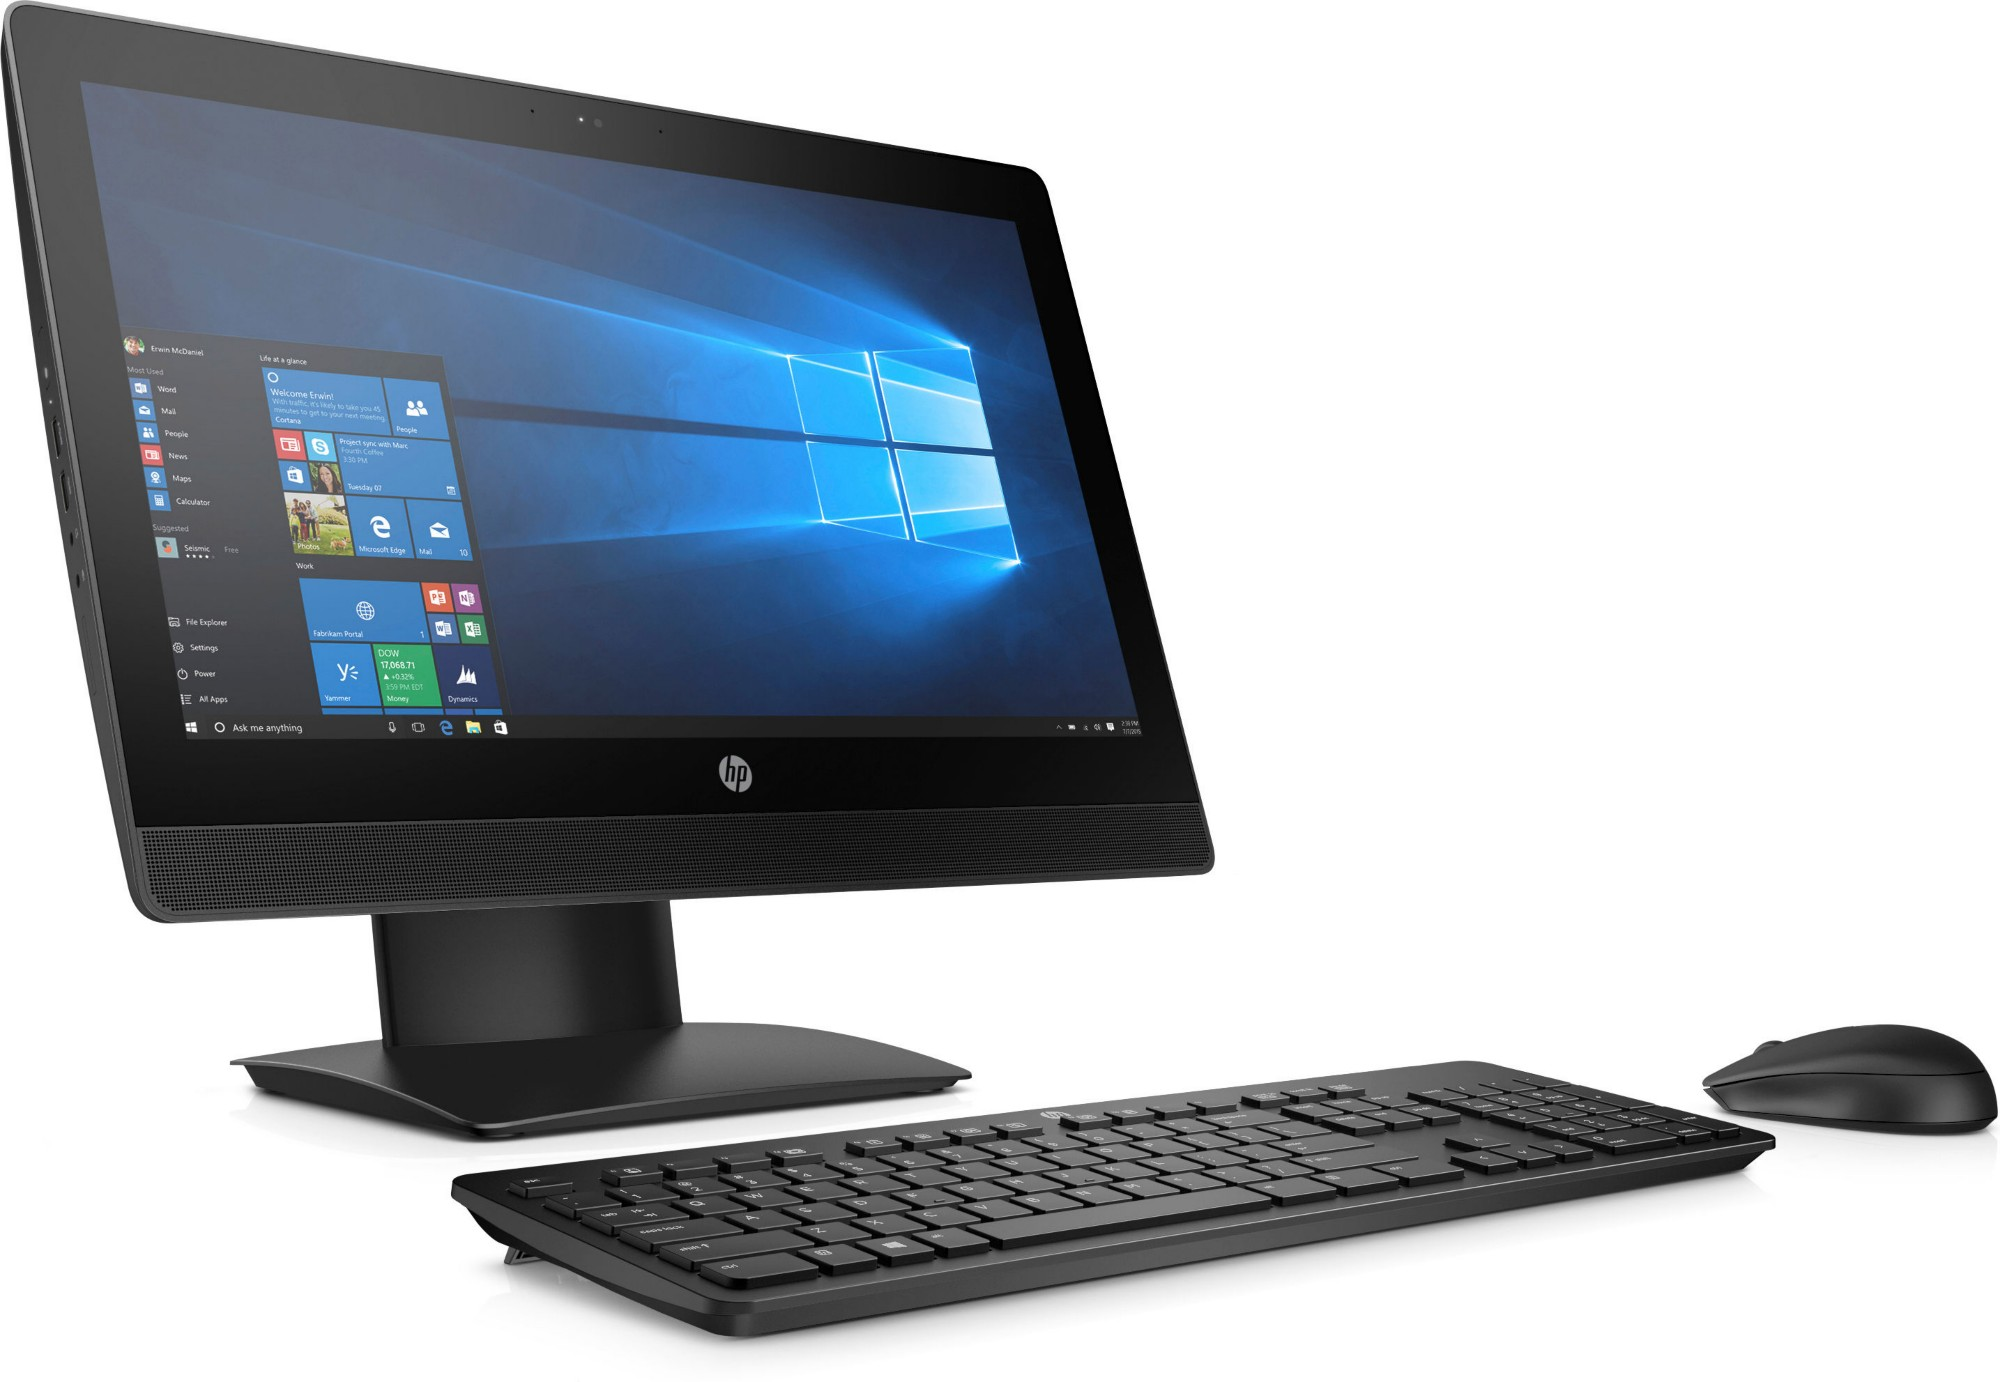 HP ProOne 400 G3 20-inch Touch All-in-One PC 2KL26EA#ABU